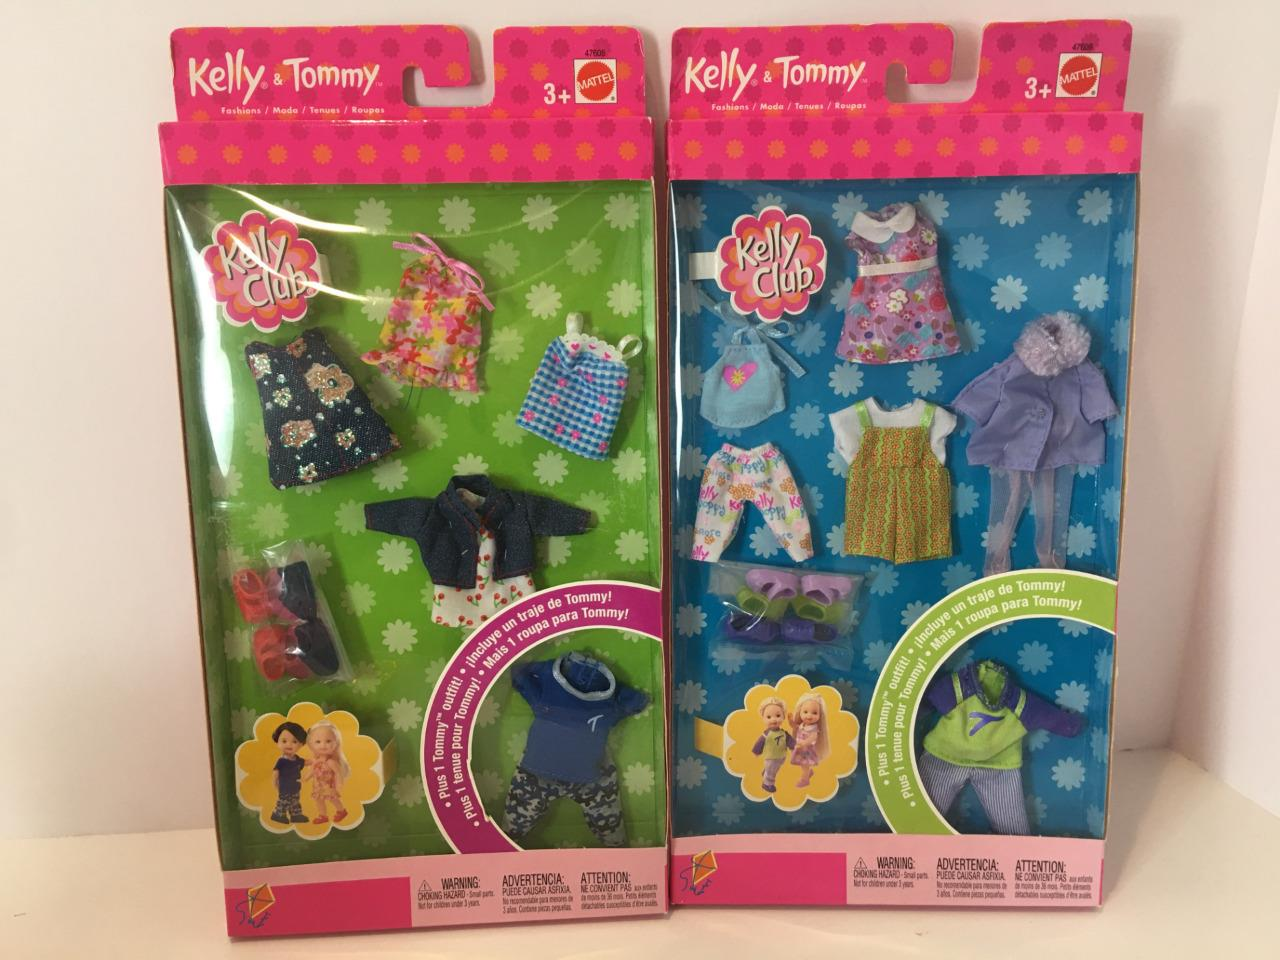 Barbie Tommy /& Kelly Club Doll Fashions Lot 2 Packs 2002 NRFB 10 Outfits Mint